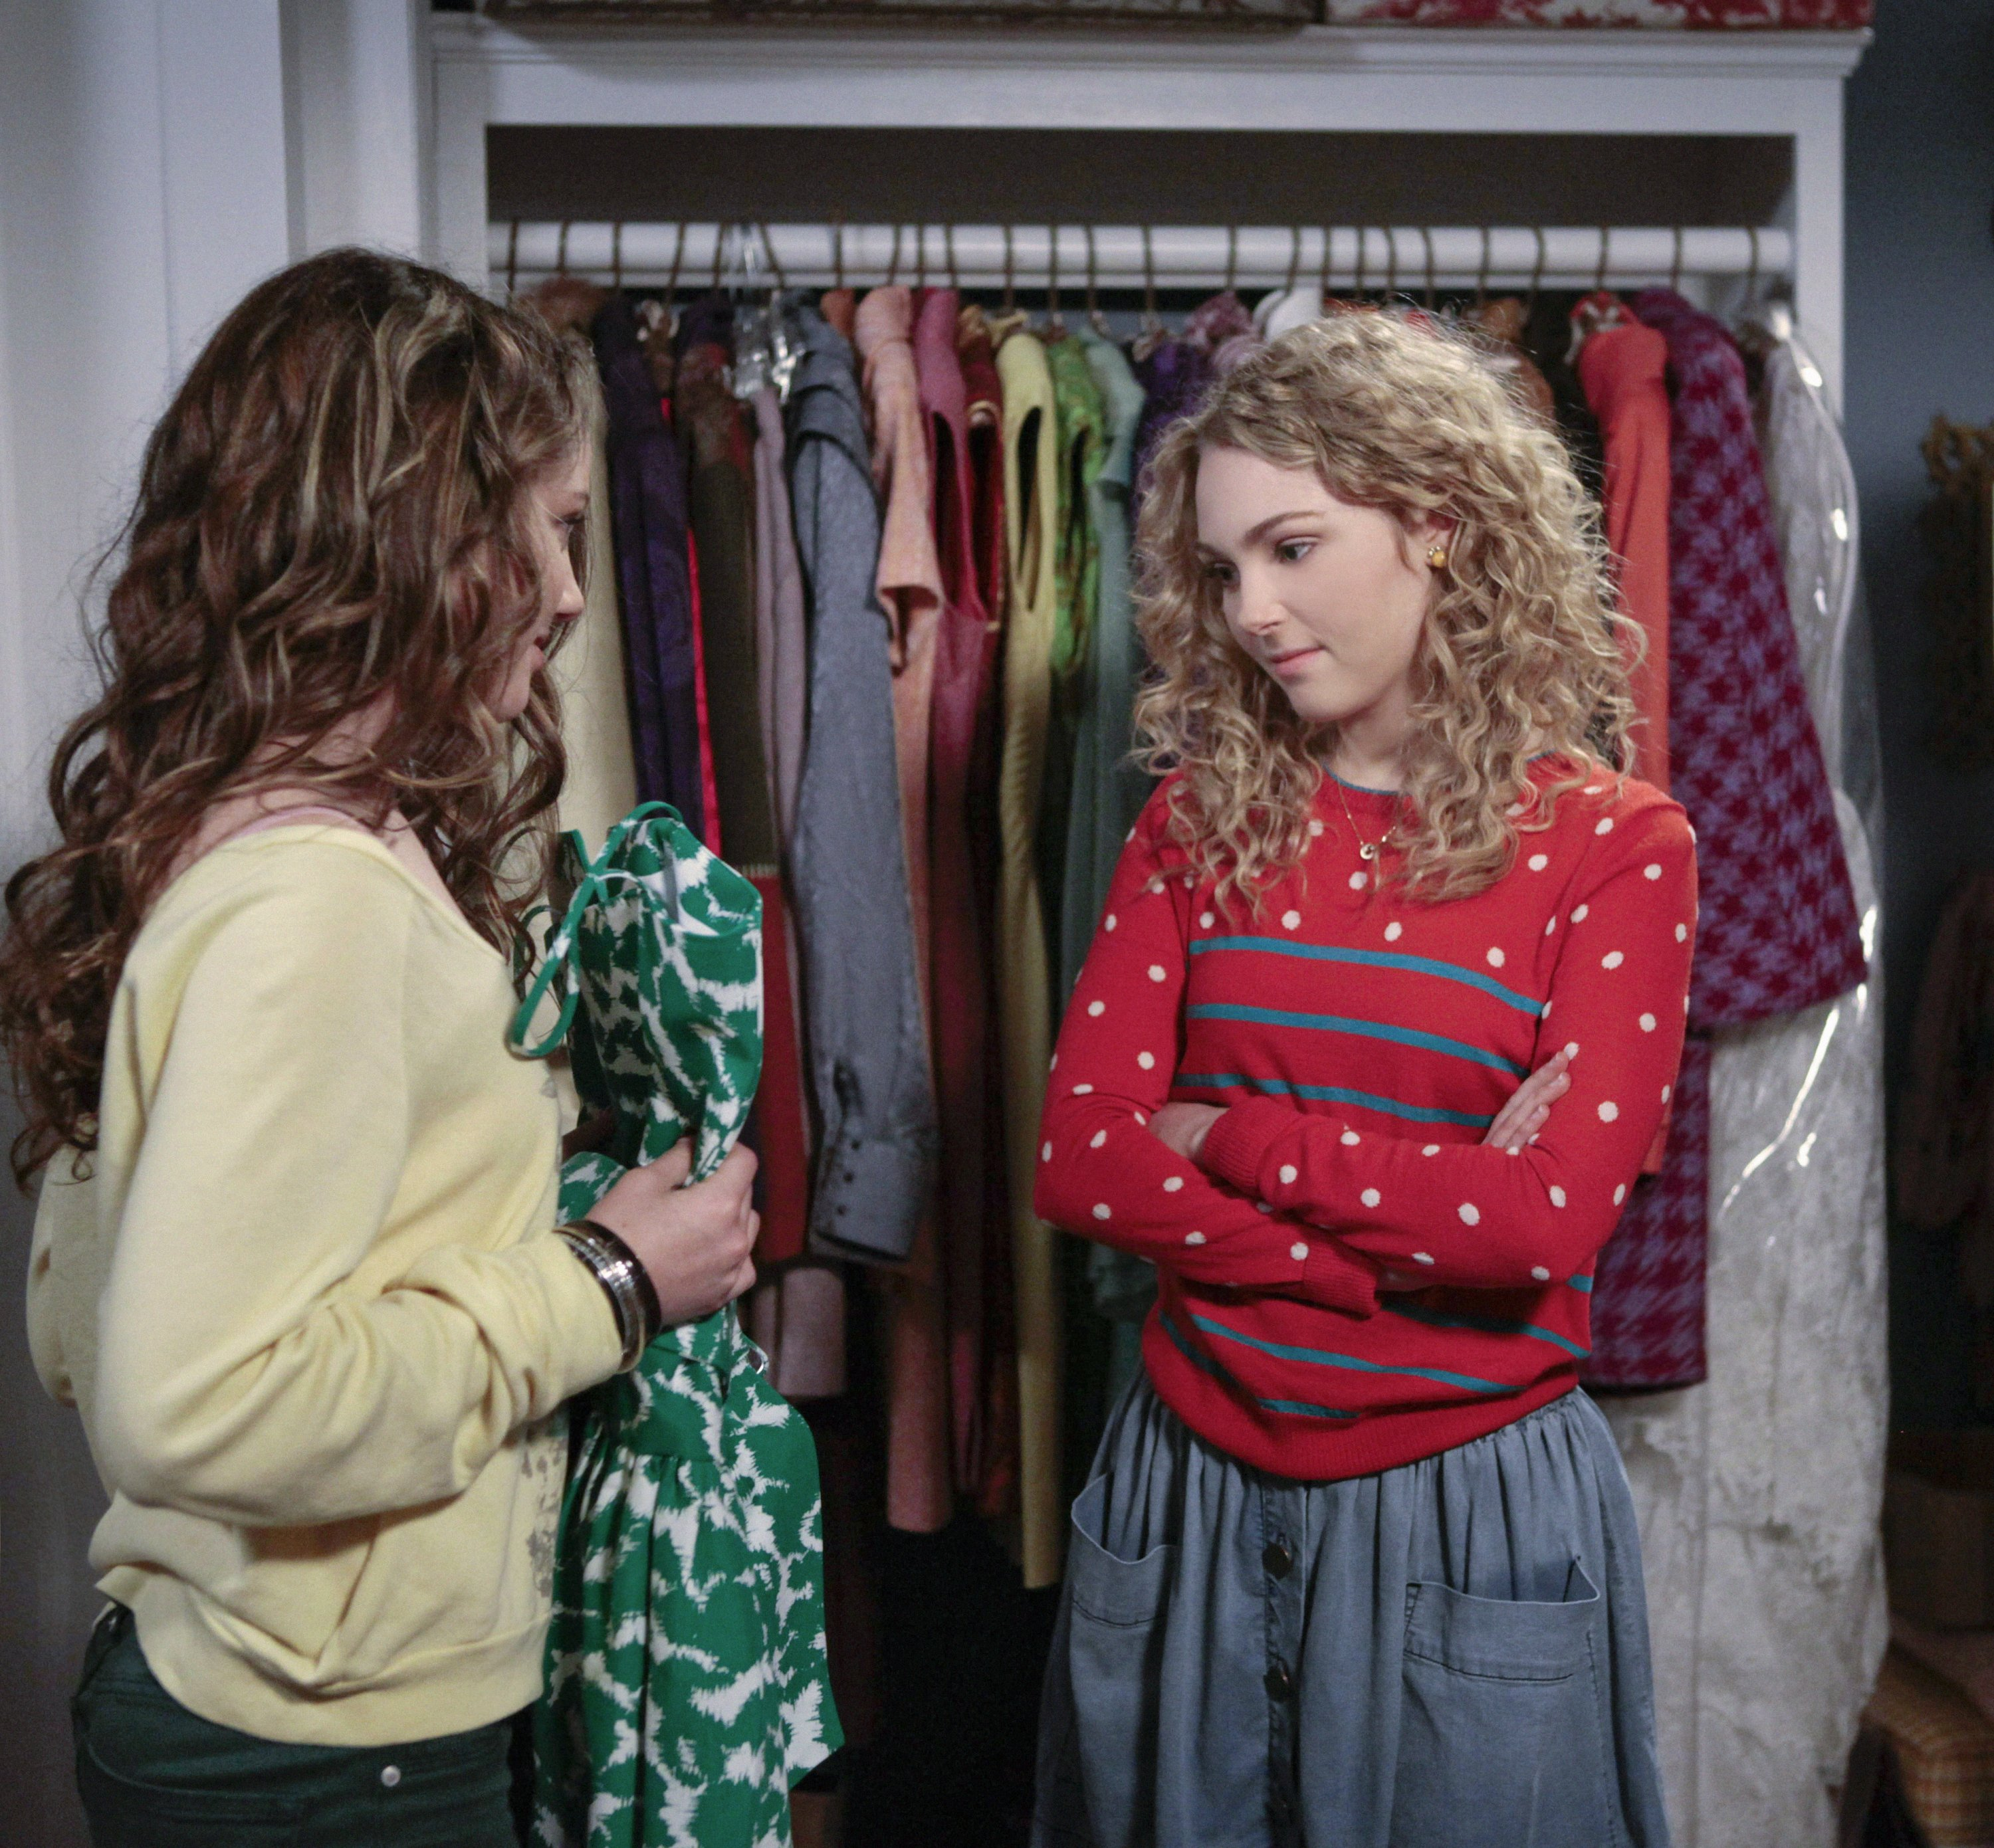 'The Carrie Diaries' to Be Canceled? Other 'Teen Prequel' Shows With More Promise